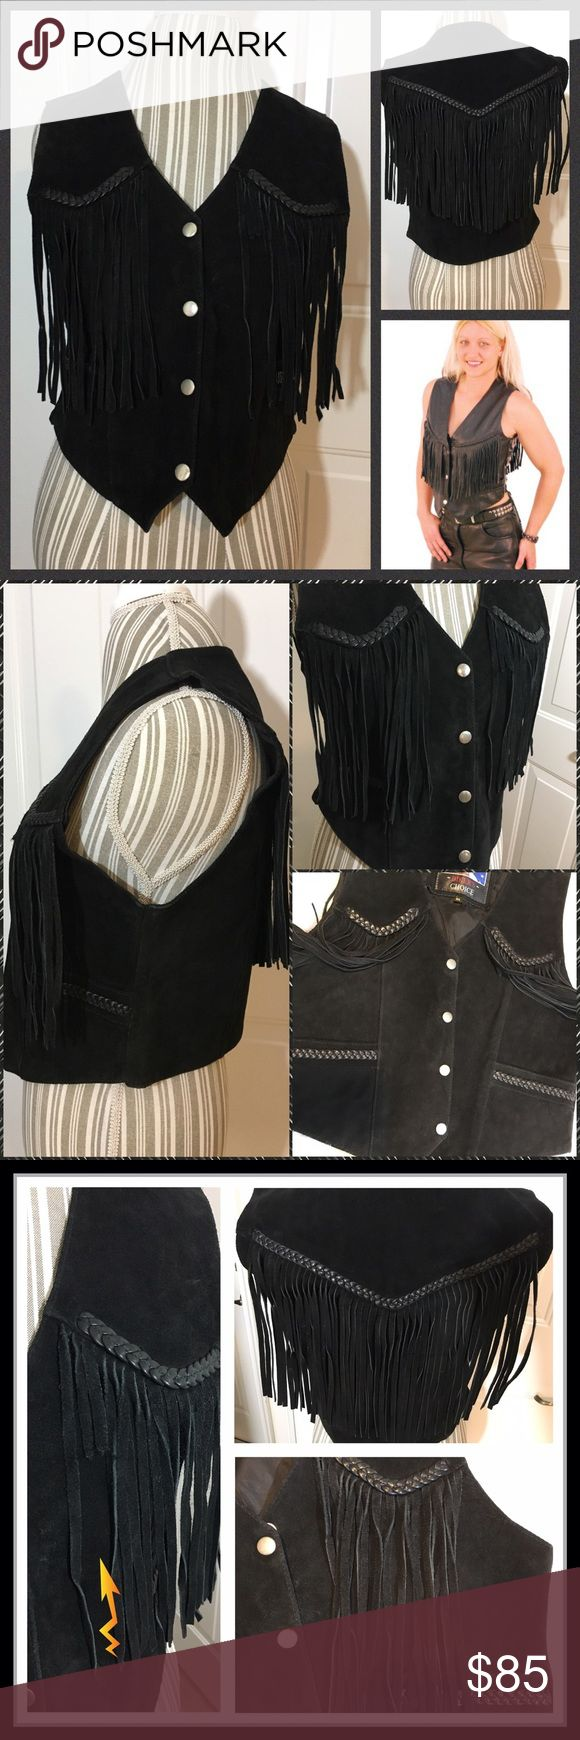 """✨Black Fringed 💯Suede & Leather Vest✨ Incredible 100% Real Suede and Leather Bikers Choice Fringed Vest...awesome fringe on the back and front of Vest with leather cord detail. In super condition...there are 2 strands of fringe that have been cut as seen in pic 3 but have shown in bottom right corner they can't be noticed unless strands laying flat. Measures M but prob fits S best. Measurements flat: top of shoulder to hem 19"""": bottom arm hole to other 18"""": top shoulder to shoulder…"""